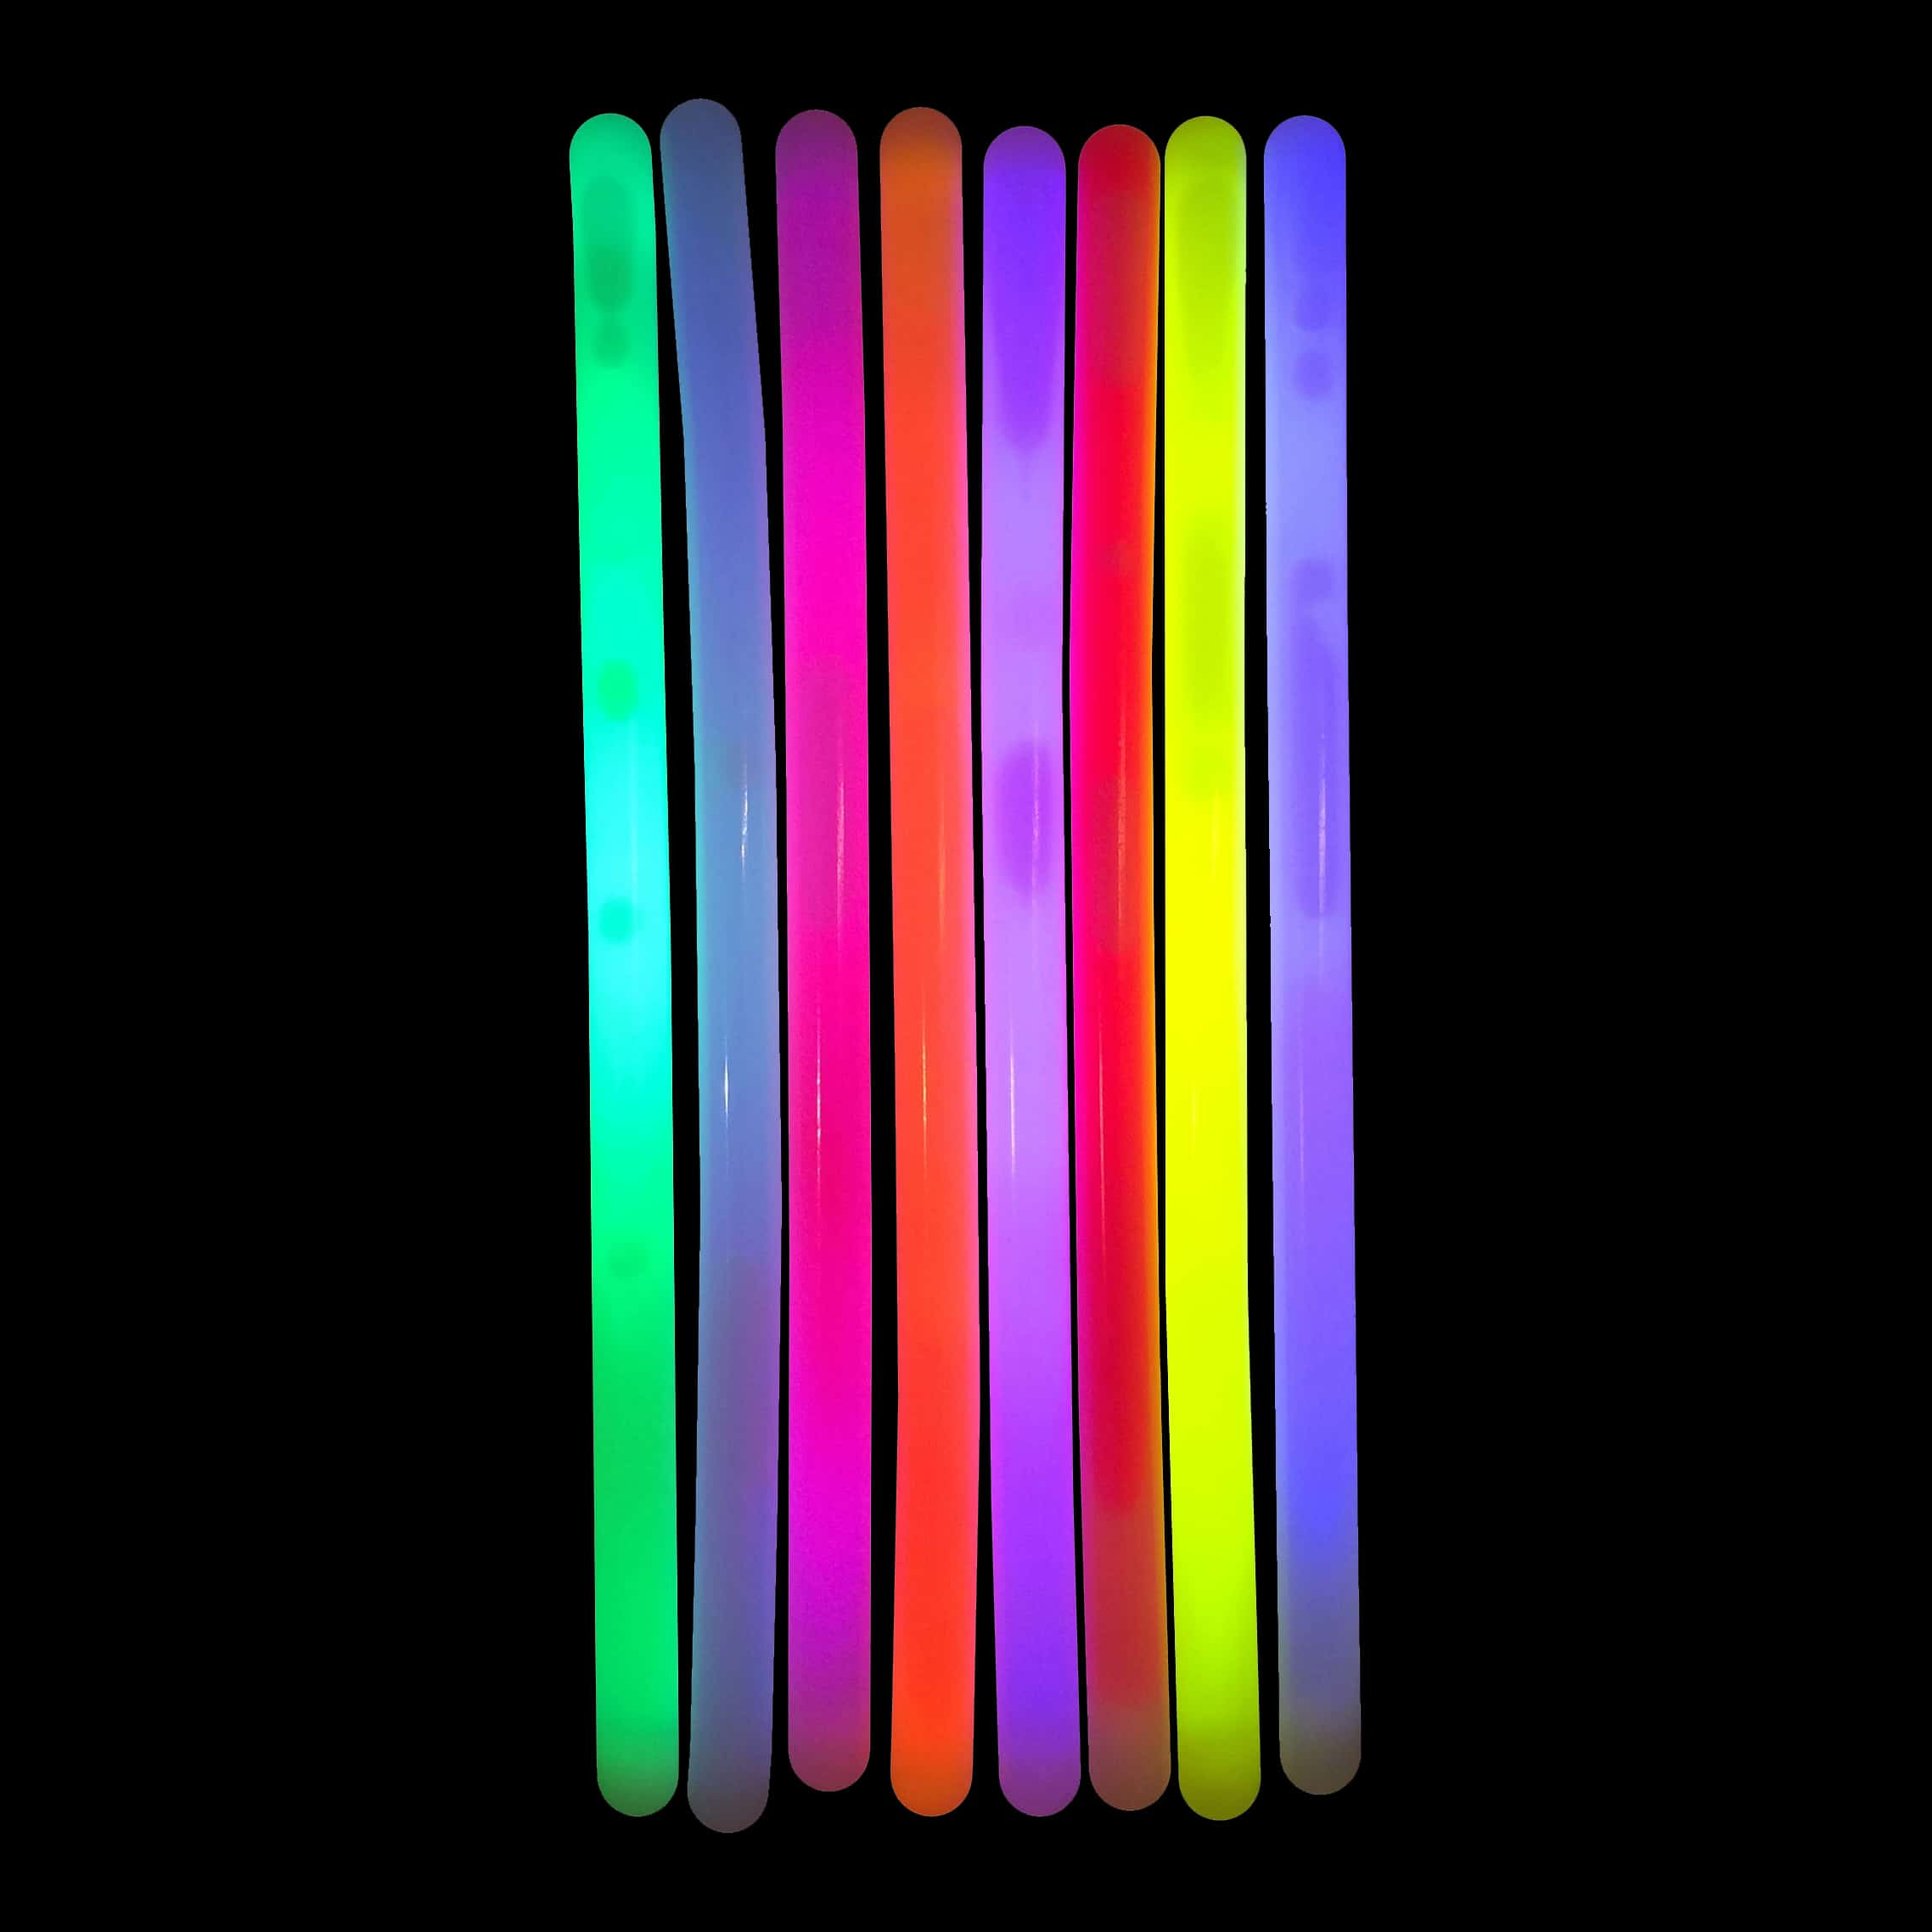 glow regular glowtopia inch sticks light product g cheap stick blackbg